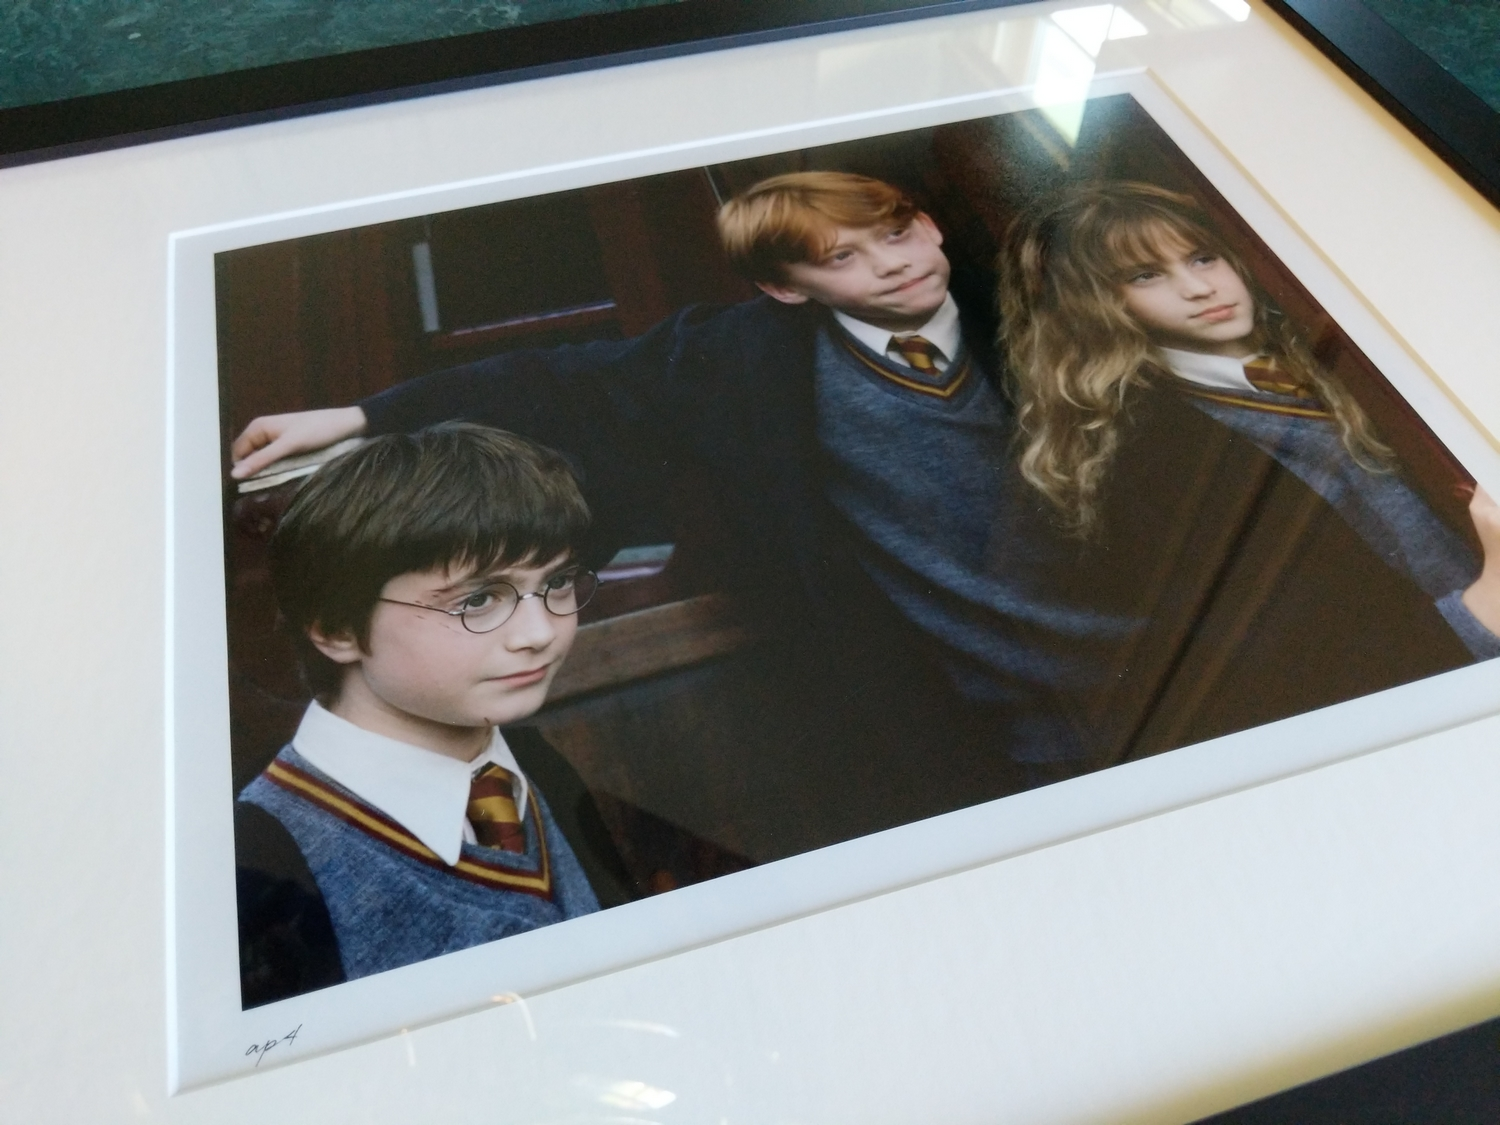 A side shot of the framed photo showing how clear Harry's face is